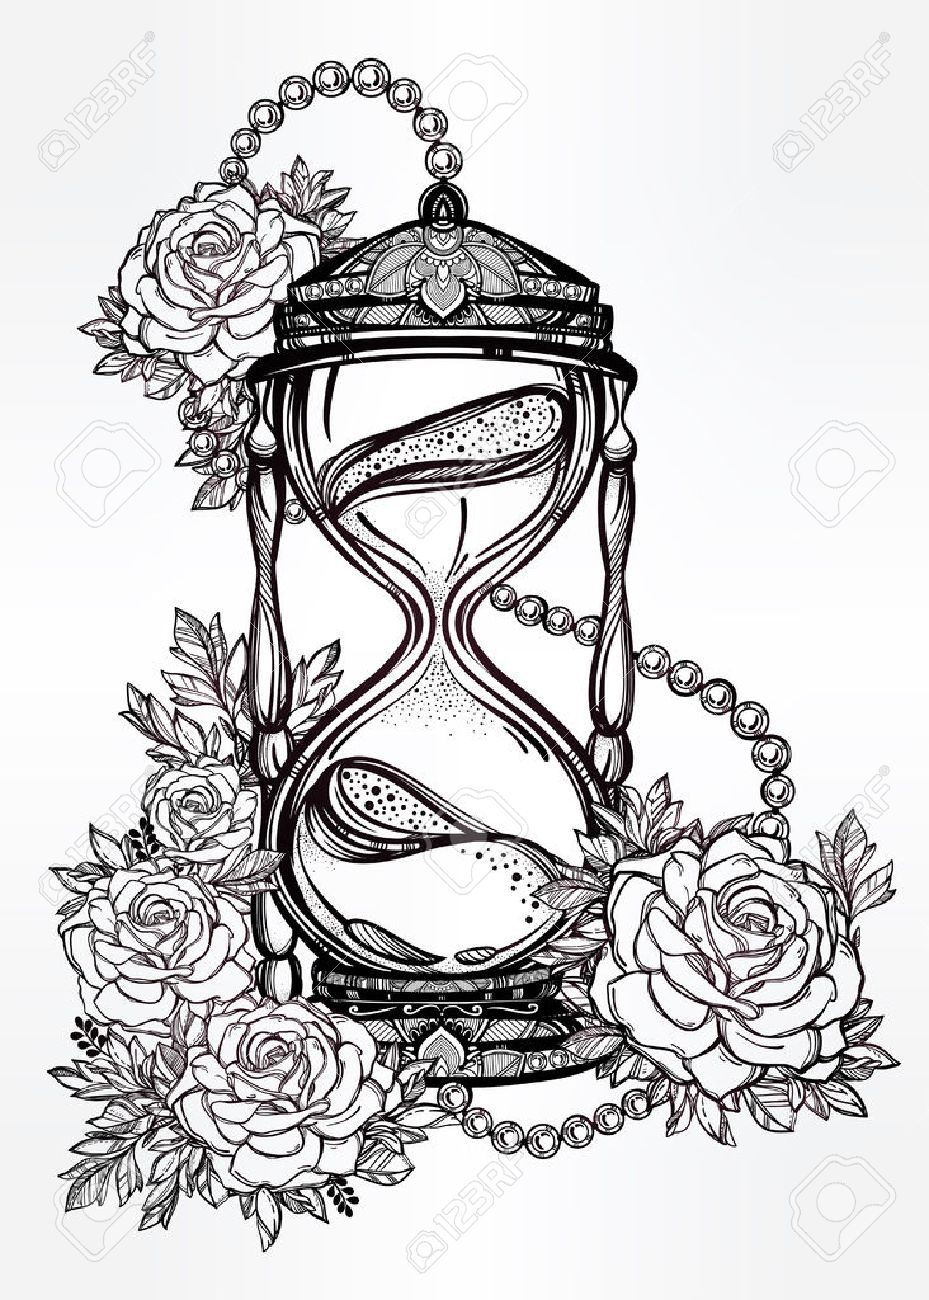 929x1300 Hand Drawn Romantic Beautiful Drawing Of A Hourglass With Roses